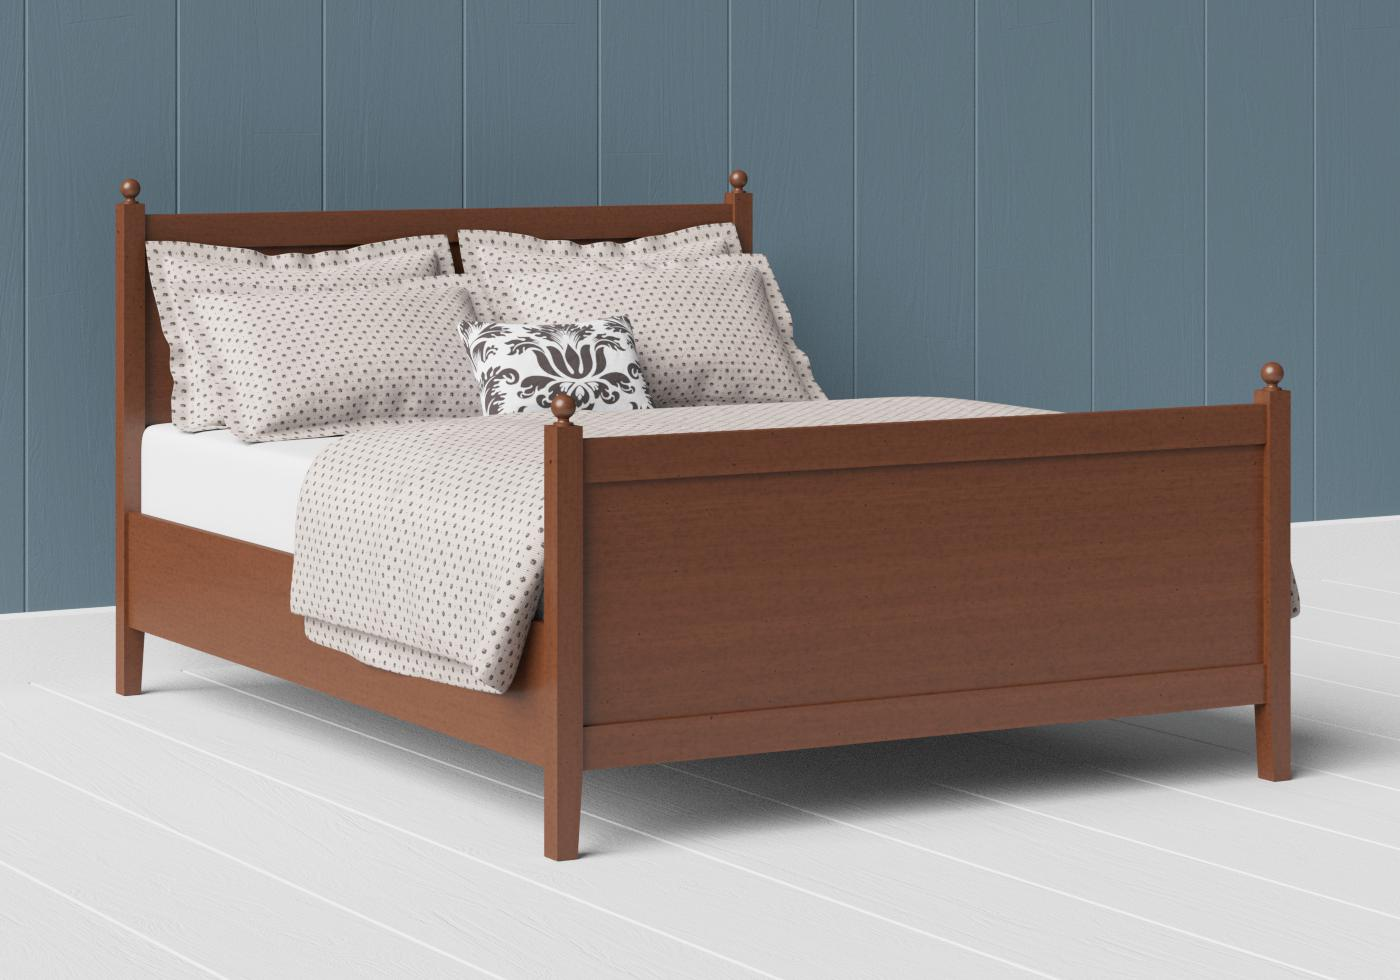 Marbella wood bed in a dark cherry finish